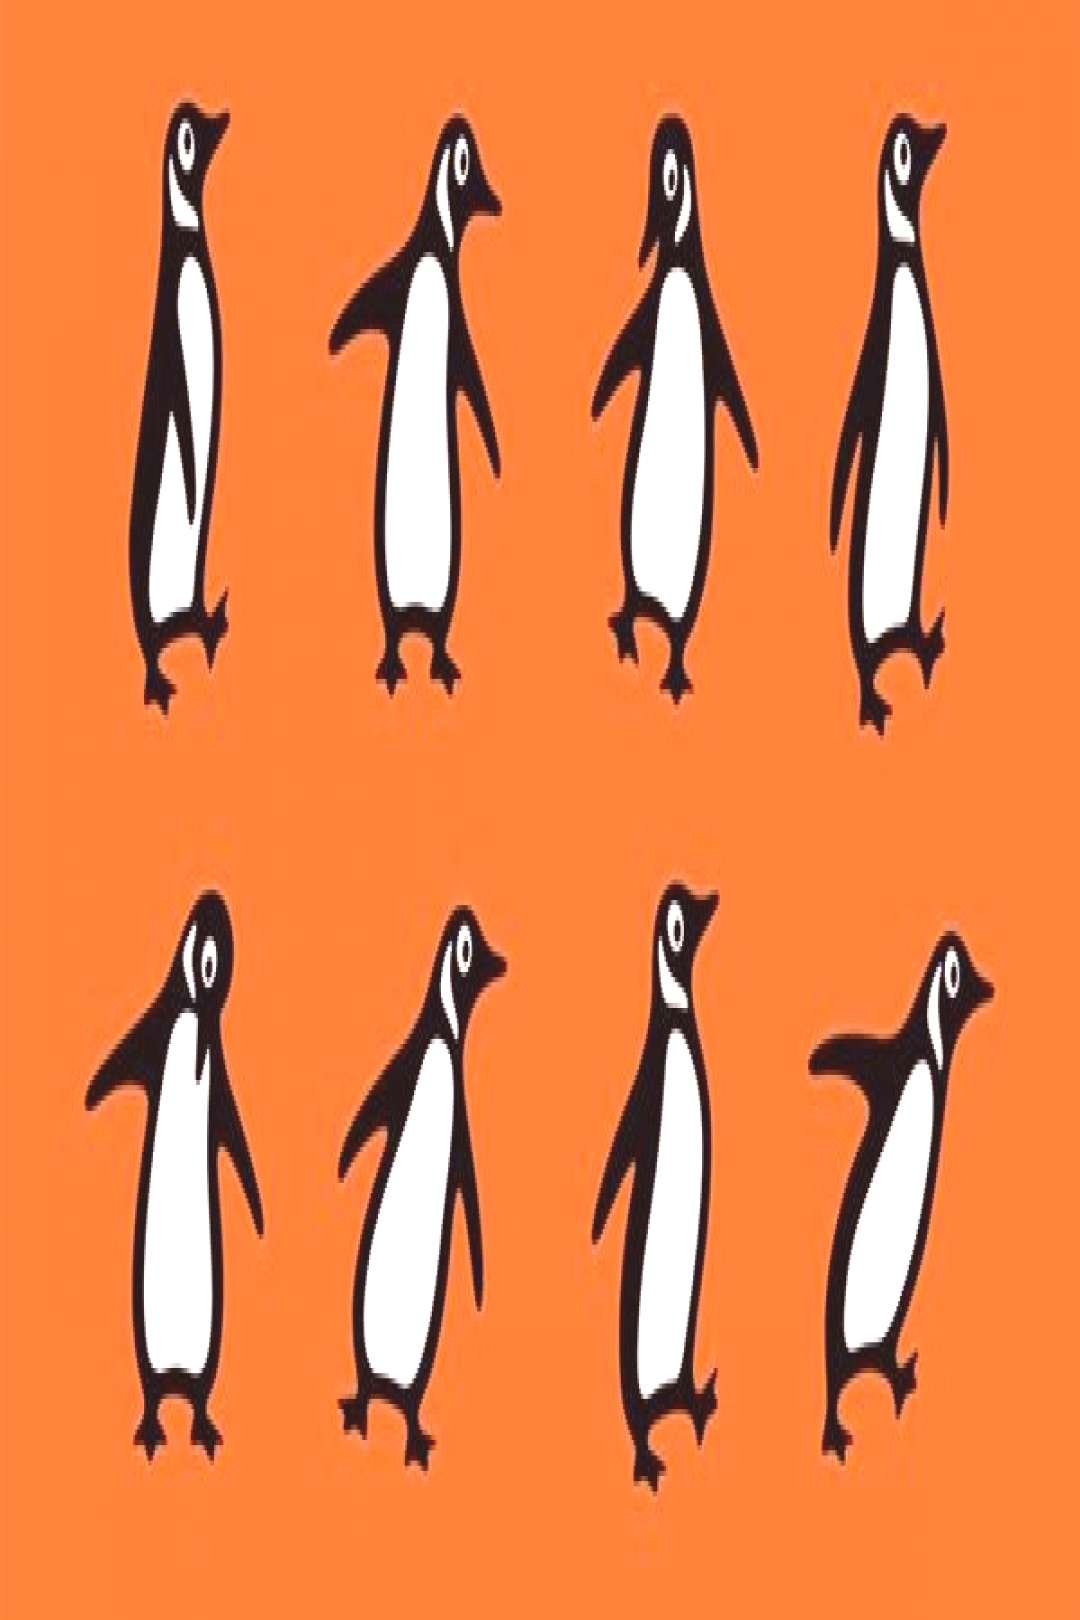 Top 100 Penguin Classics - How many have you read?